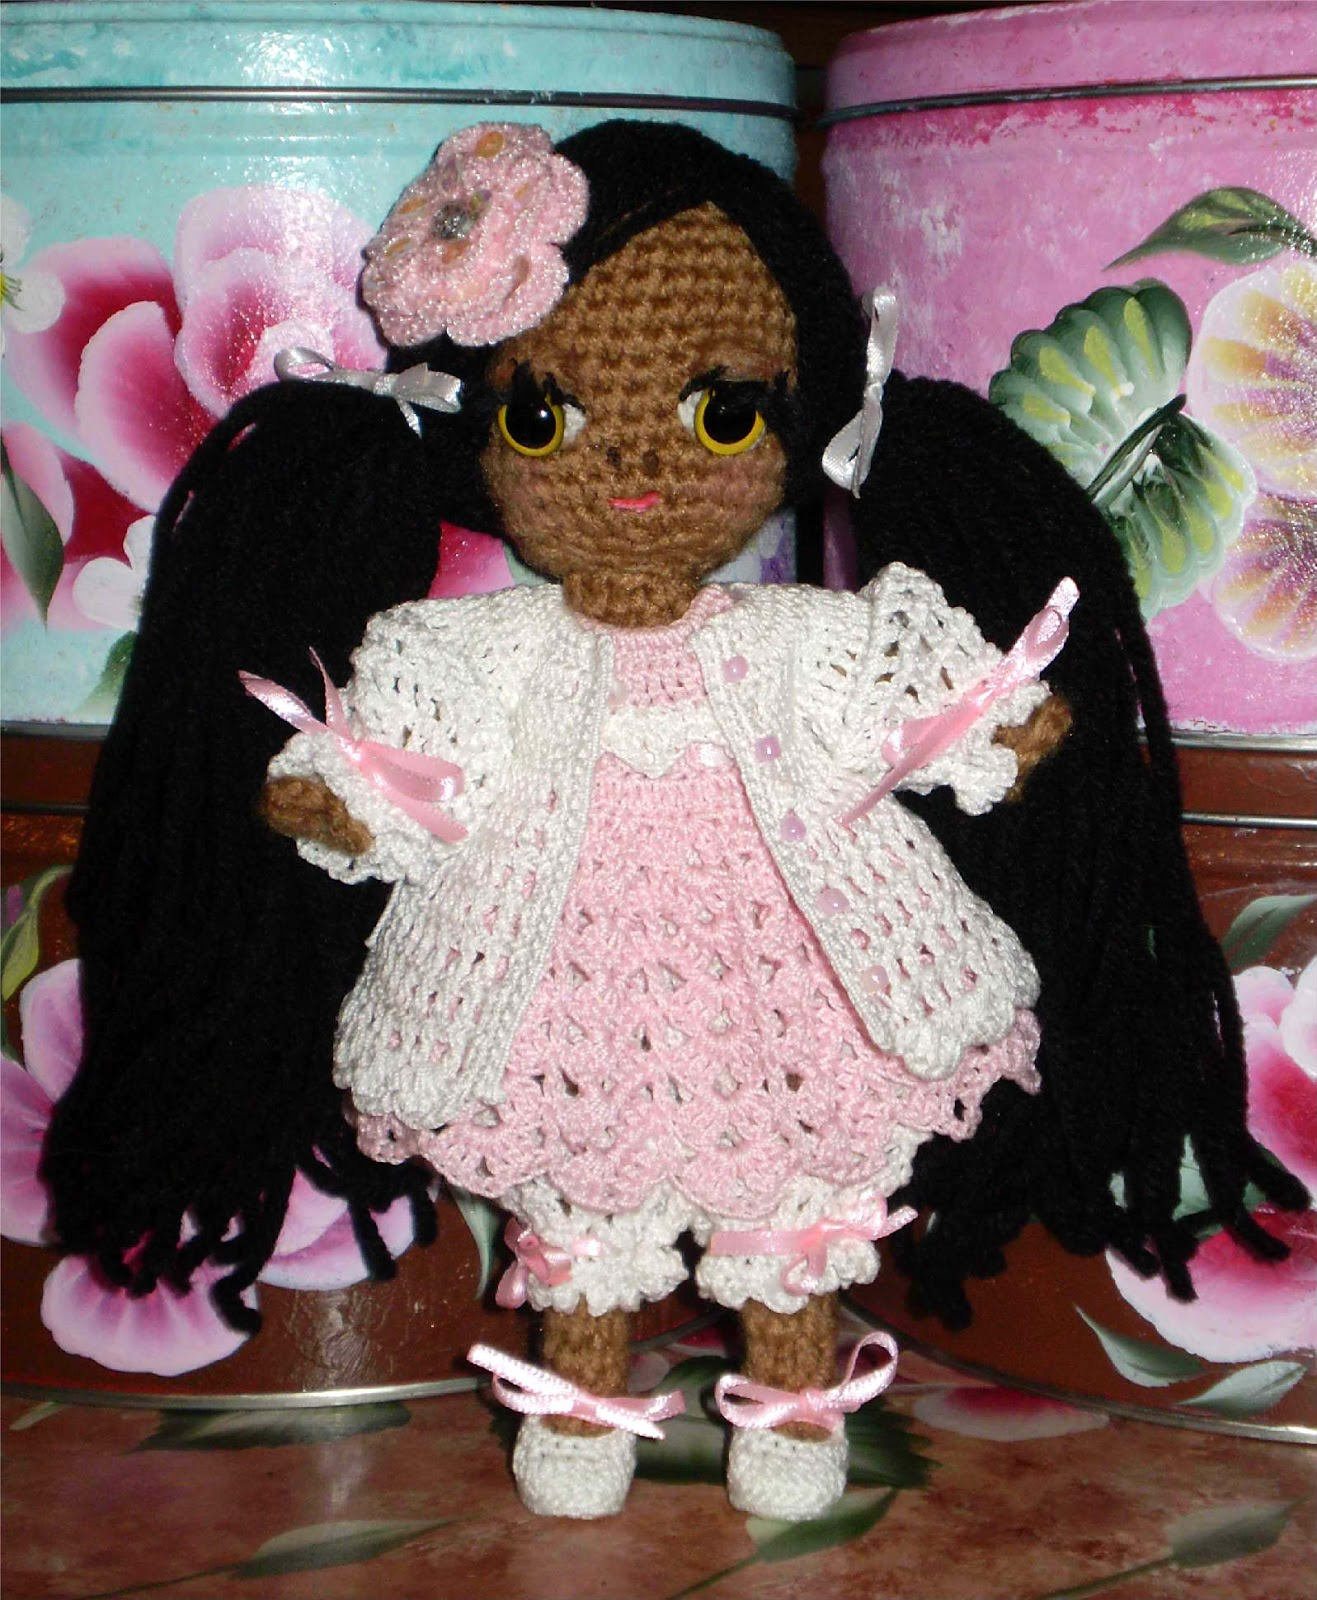 Holiday Mini Broom Dolls 2 Pattern Leaflet [L019] - $6.95 : Maggie